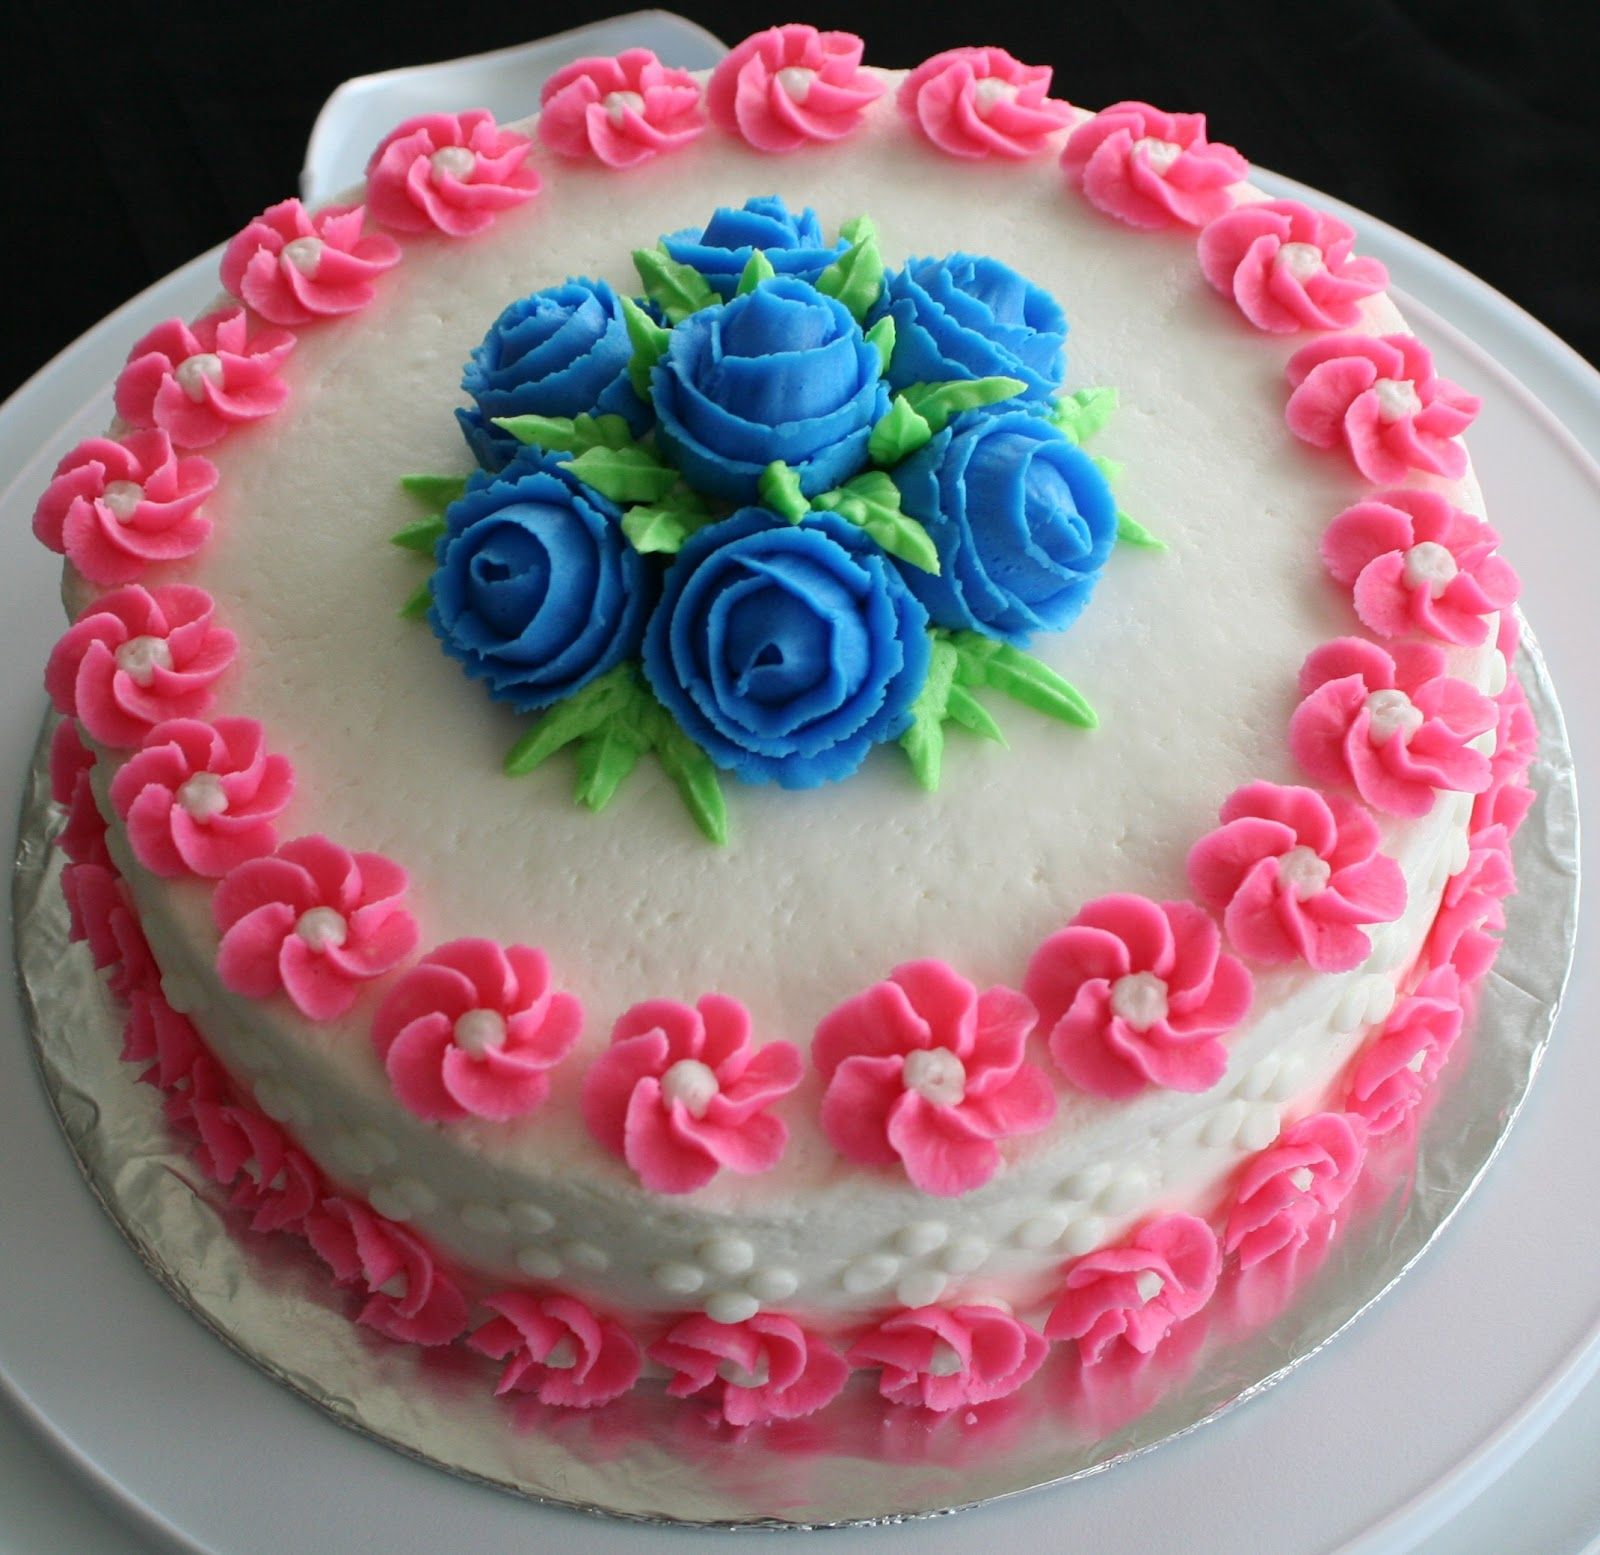 buttercream flowers - Google Search All about cakes ...